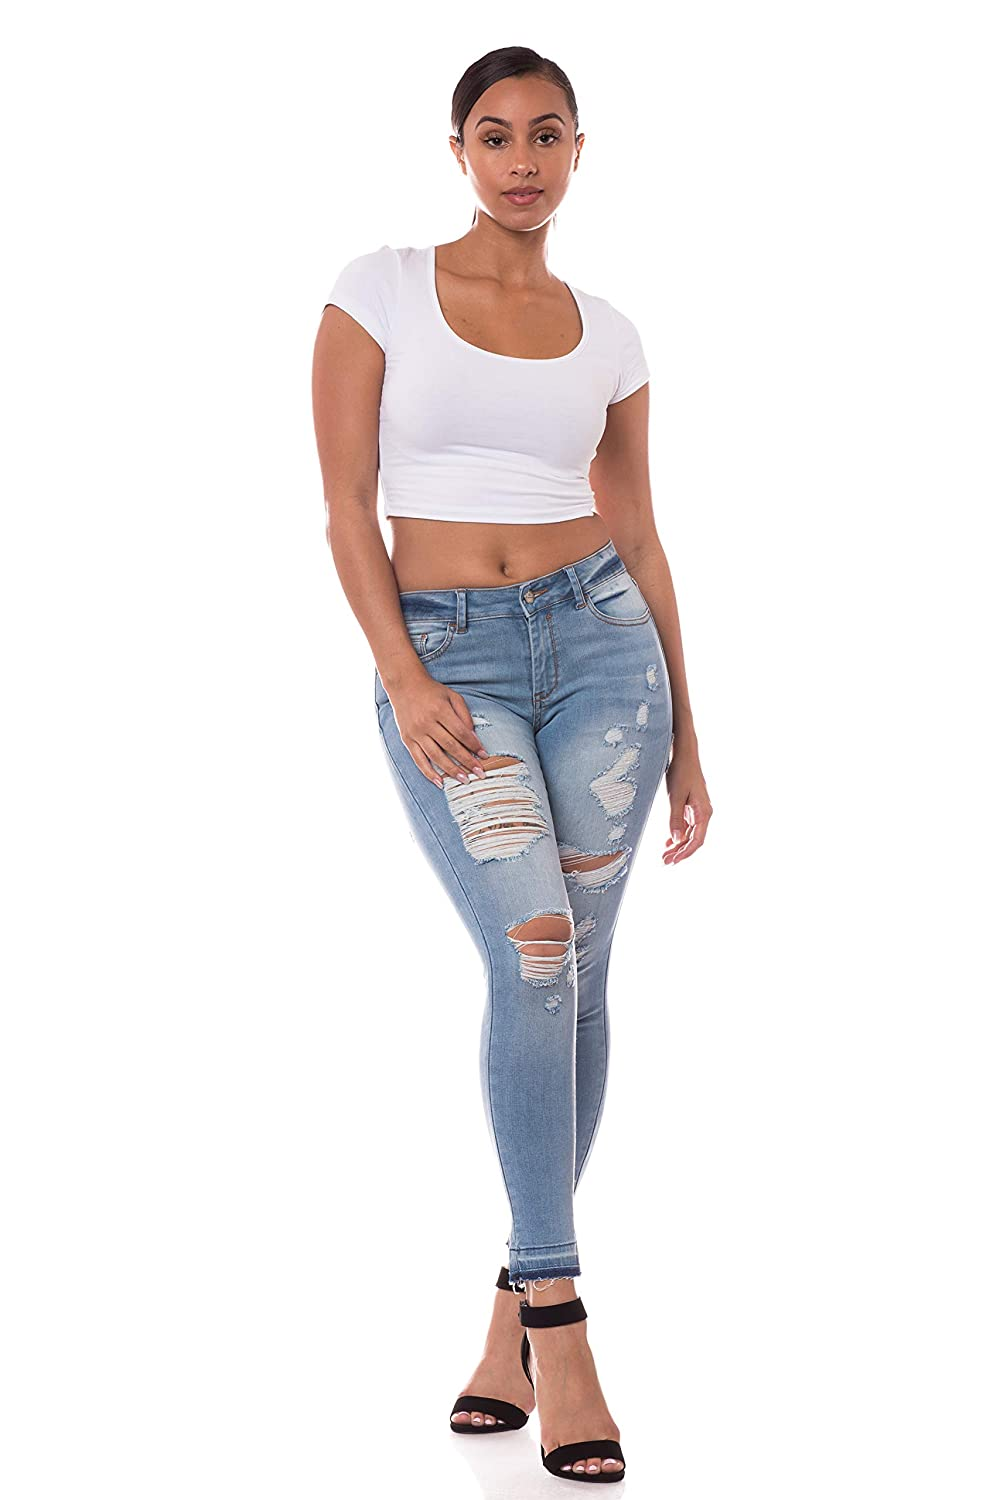 1235   Light bluee AP bluee Aphrodite Mid Rise Jeans for Women  Skinny Womens Distressed Ripped Jeans